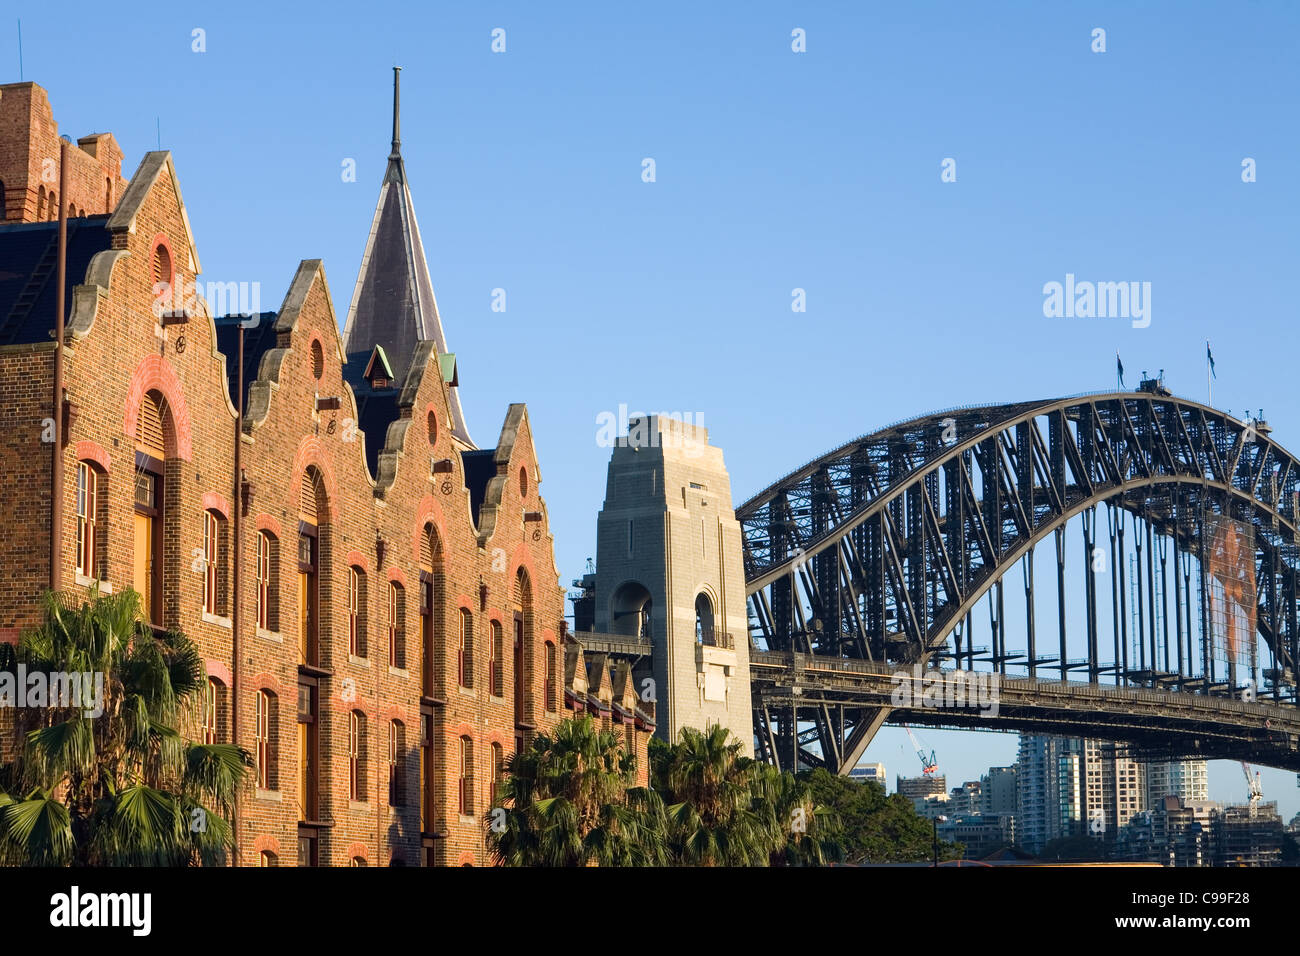 L'architettura dell'Australasian Steam Navigation Co. edificio e Harbour Bridge. Sydney, Nuovo Galles del Sud, Australia Foto Stock